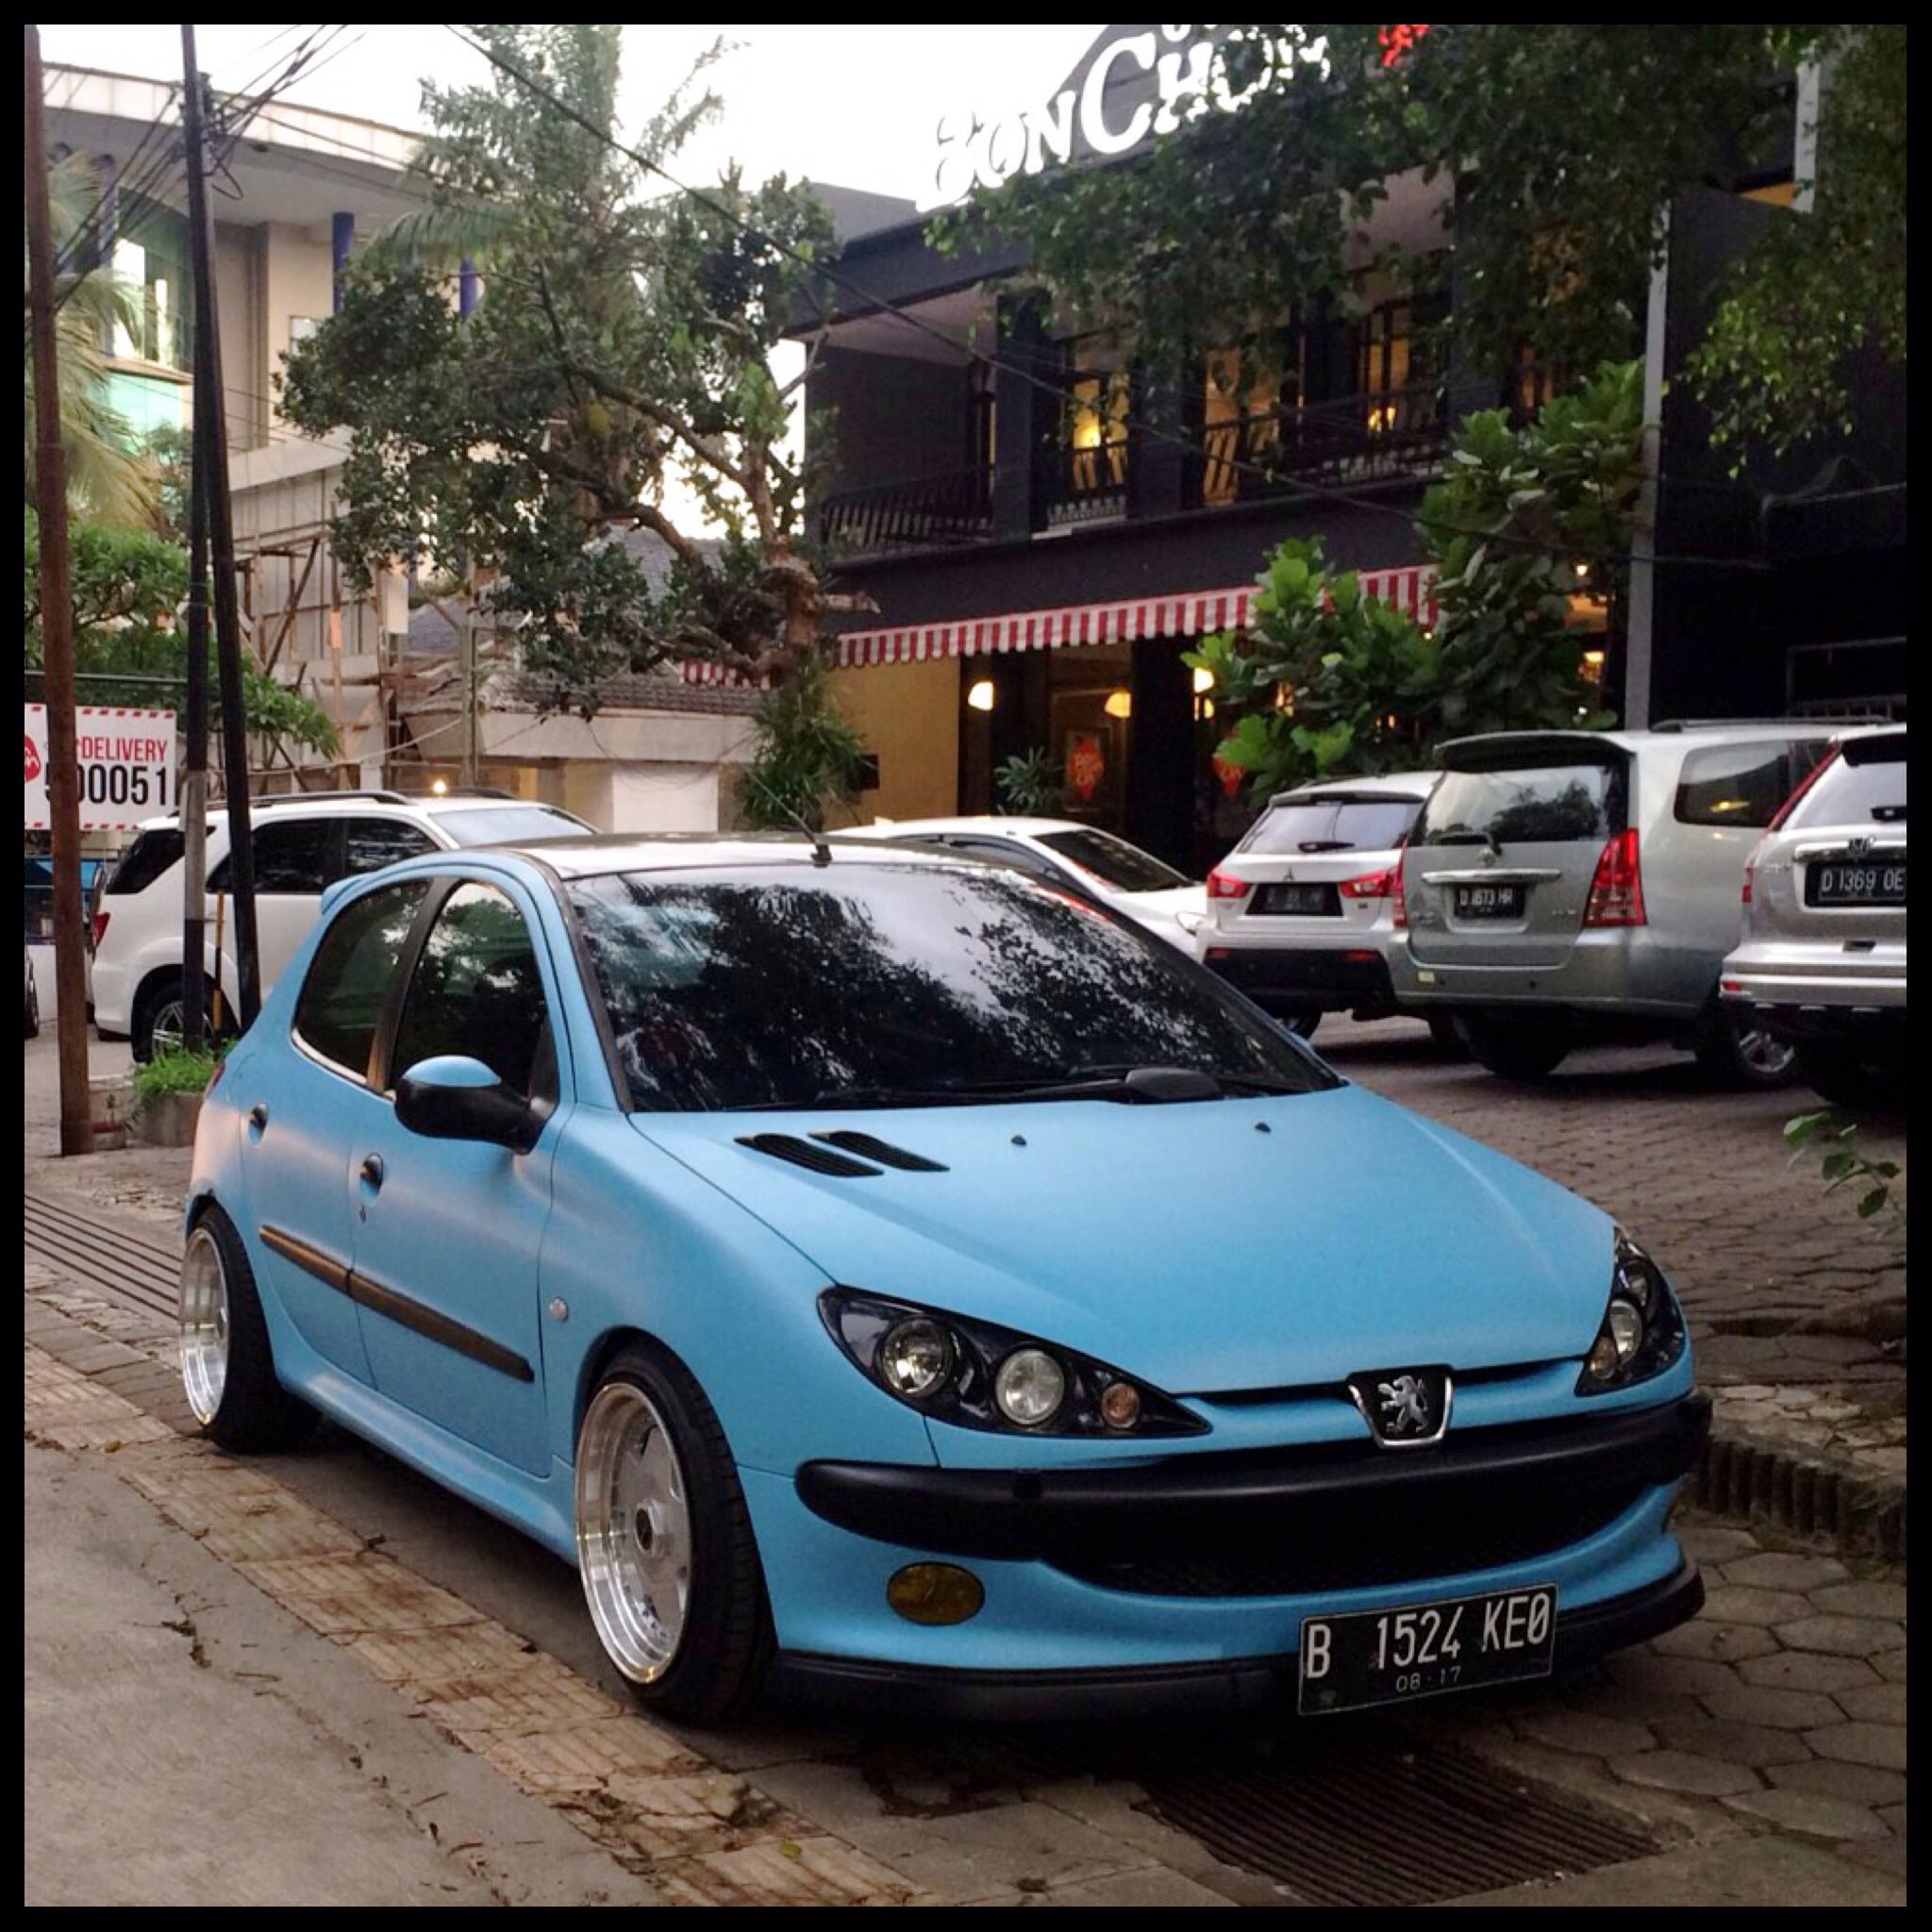 scirocco peugeot 206 black - Αναζήτηση google | cars | pinterest